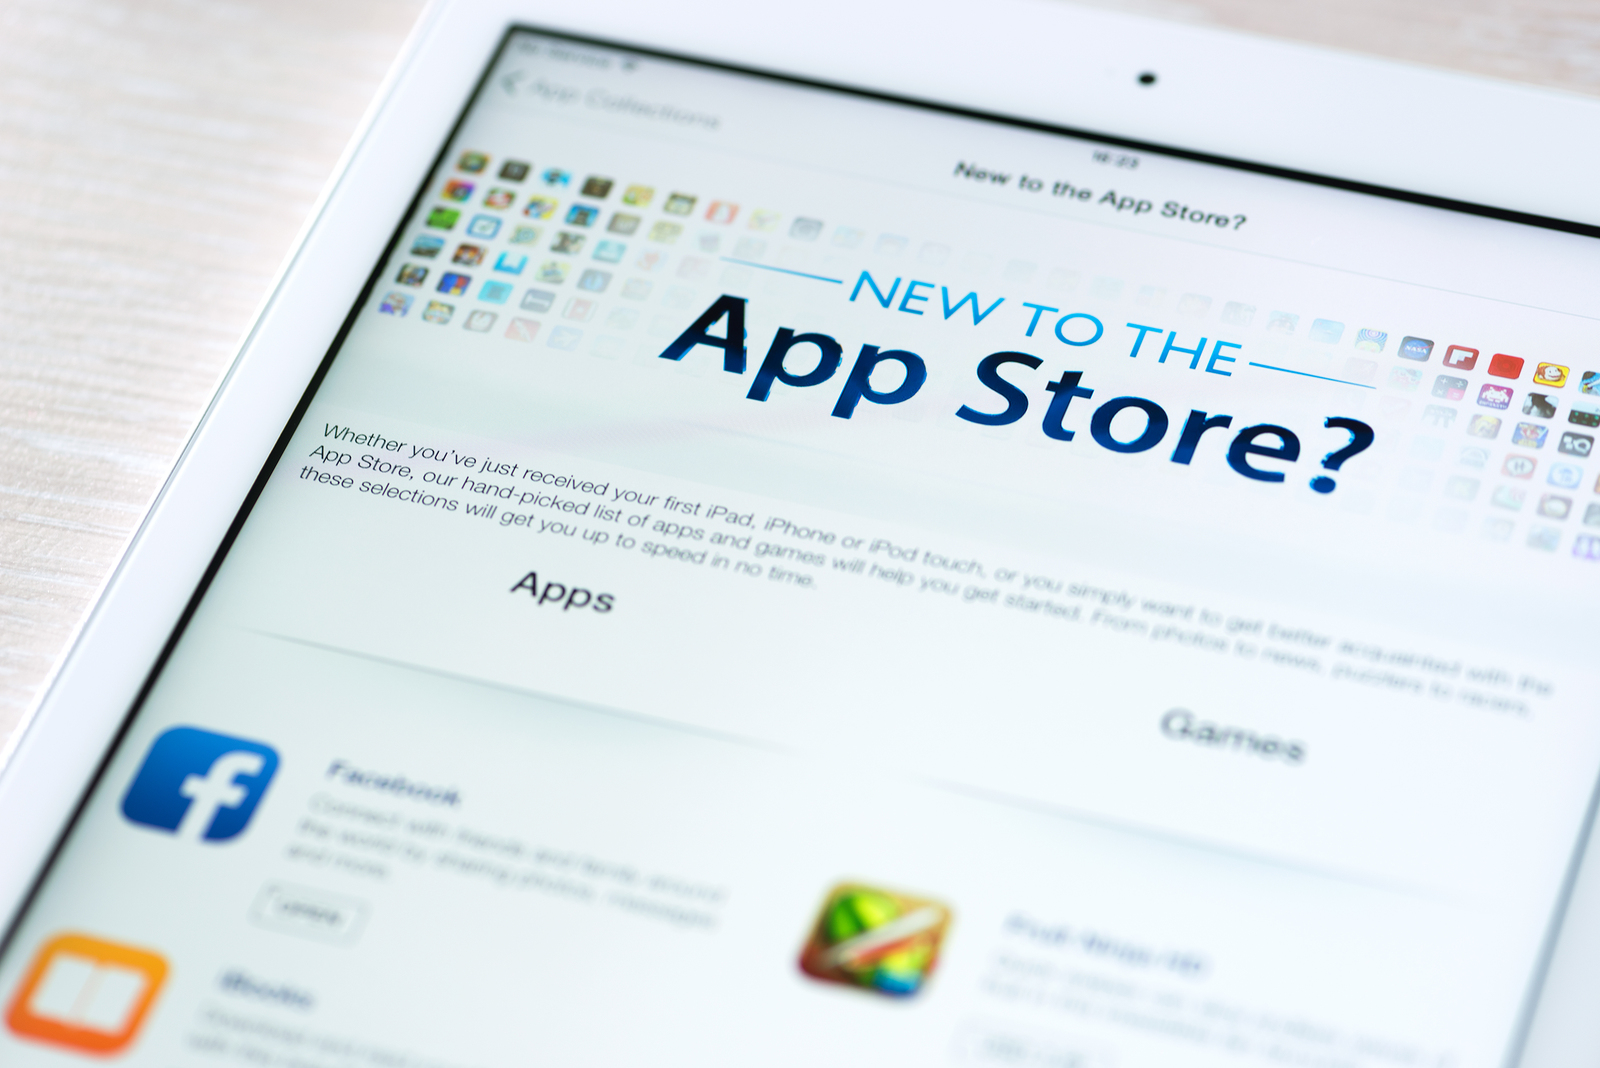 What happened to the App Store and iTunes Store?